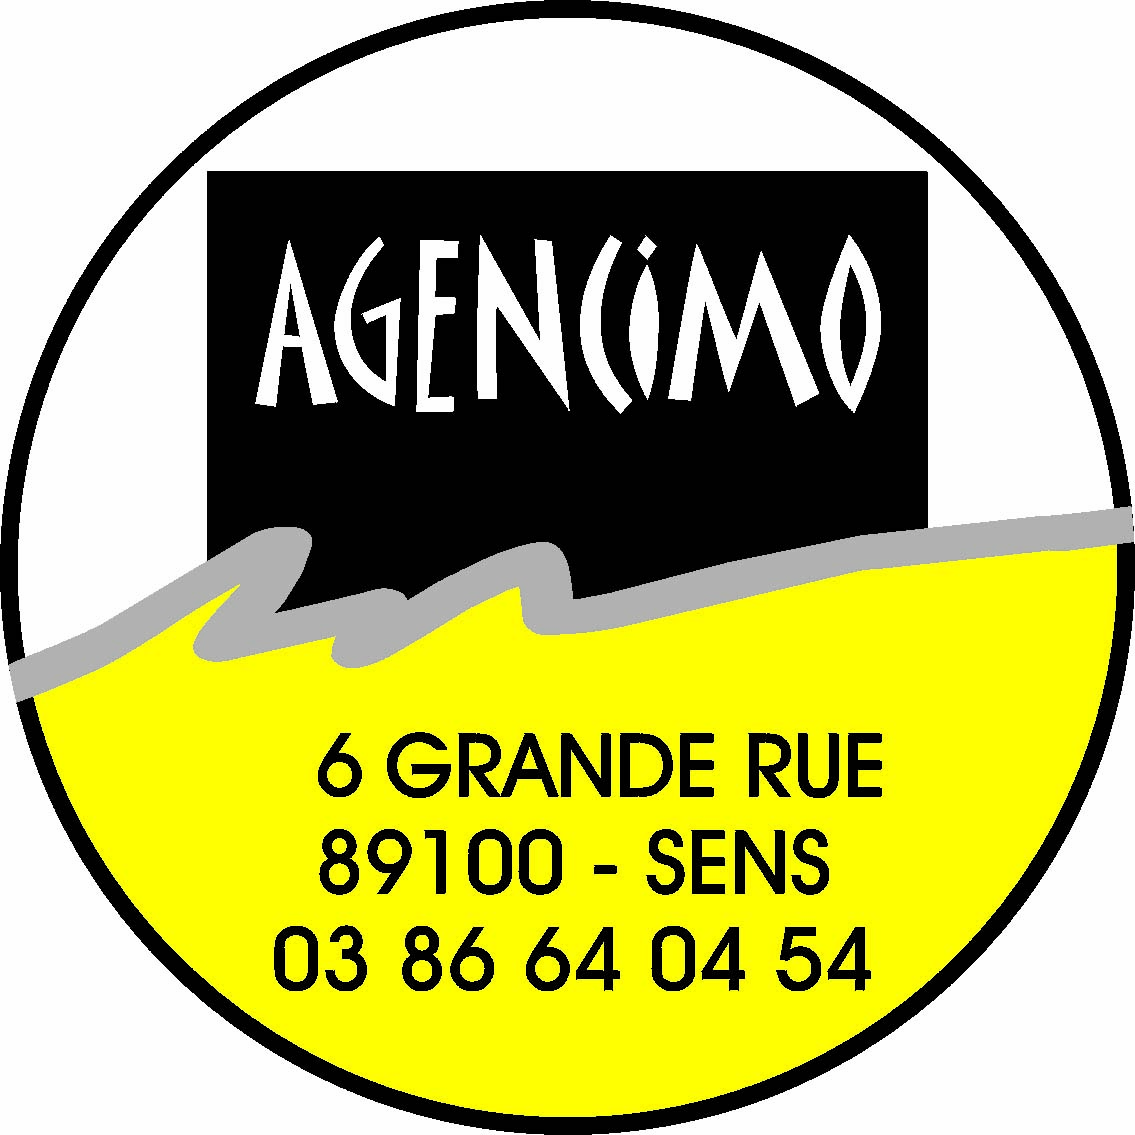 accueil agencimo agence immobiliere sens